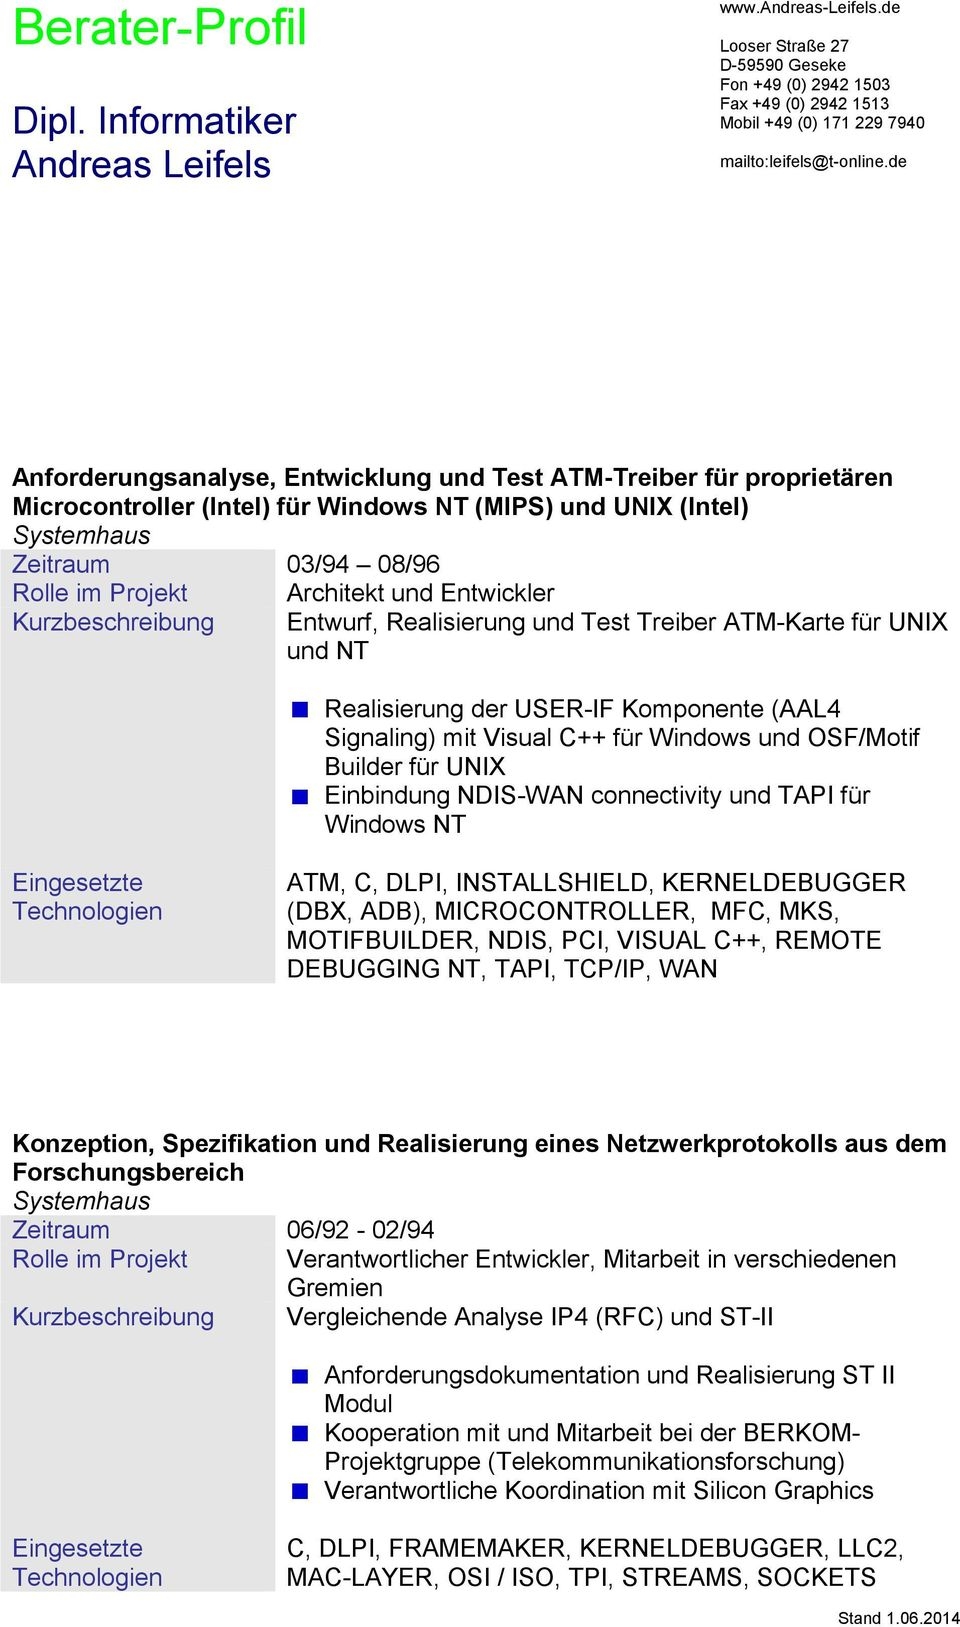 NDIS-WAN connectivity und TAPI für Windows NT ATM, C, DLPI, INSTALLSHIELD, KERNELDEBUGGER (DBX, ADB), MICROCONTROLLER, MFC, MKS, MOTIFBUILDER, NDIS, PCI, VISUAL C++, REMOTE DEBUGGING NT, TAPI,